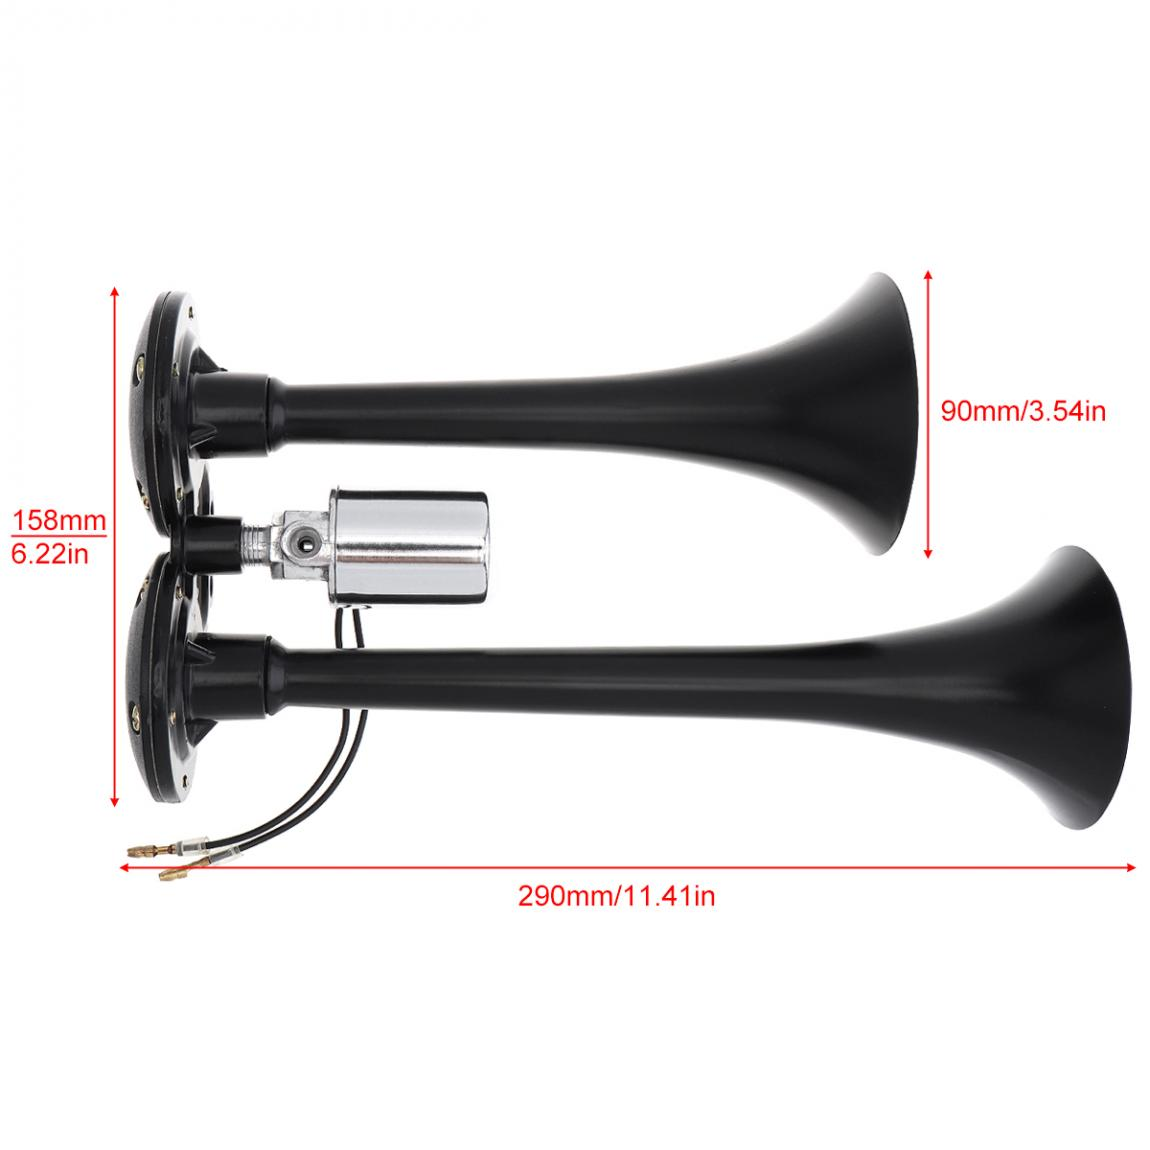 12V 178DB Super Loud Black Dual Trumpet Electronically Controlled Car Air Horn for Cars Trucks Boats Motorcycles Vehicles in Multi tone Claxon Horns from Automobiles Motorcycles